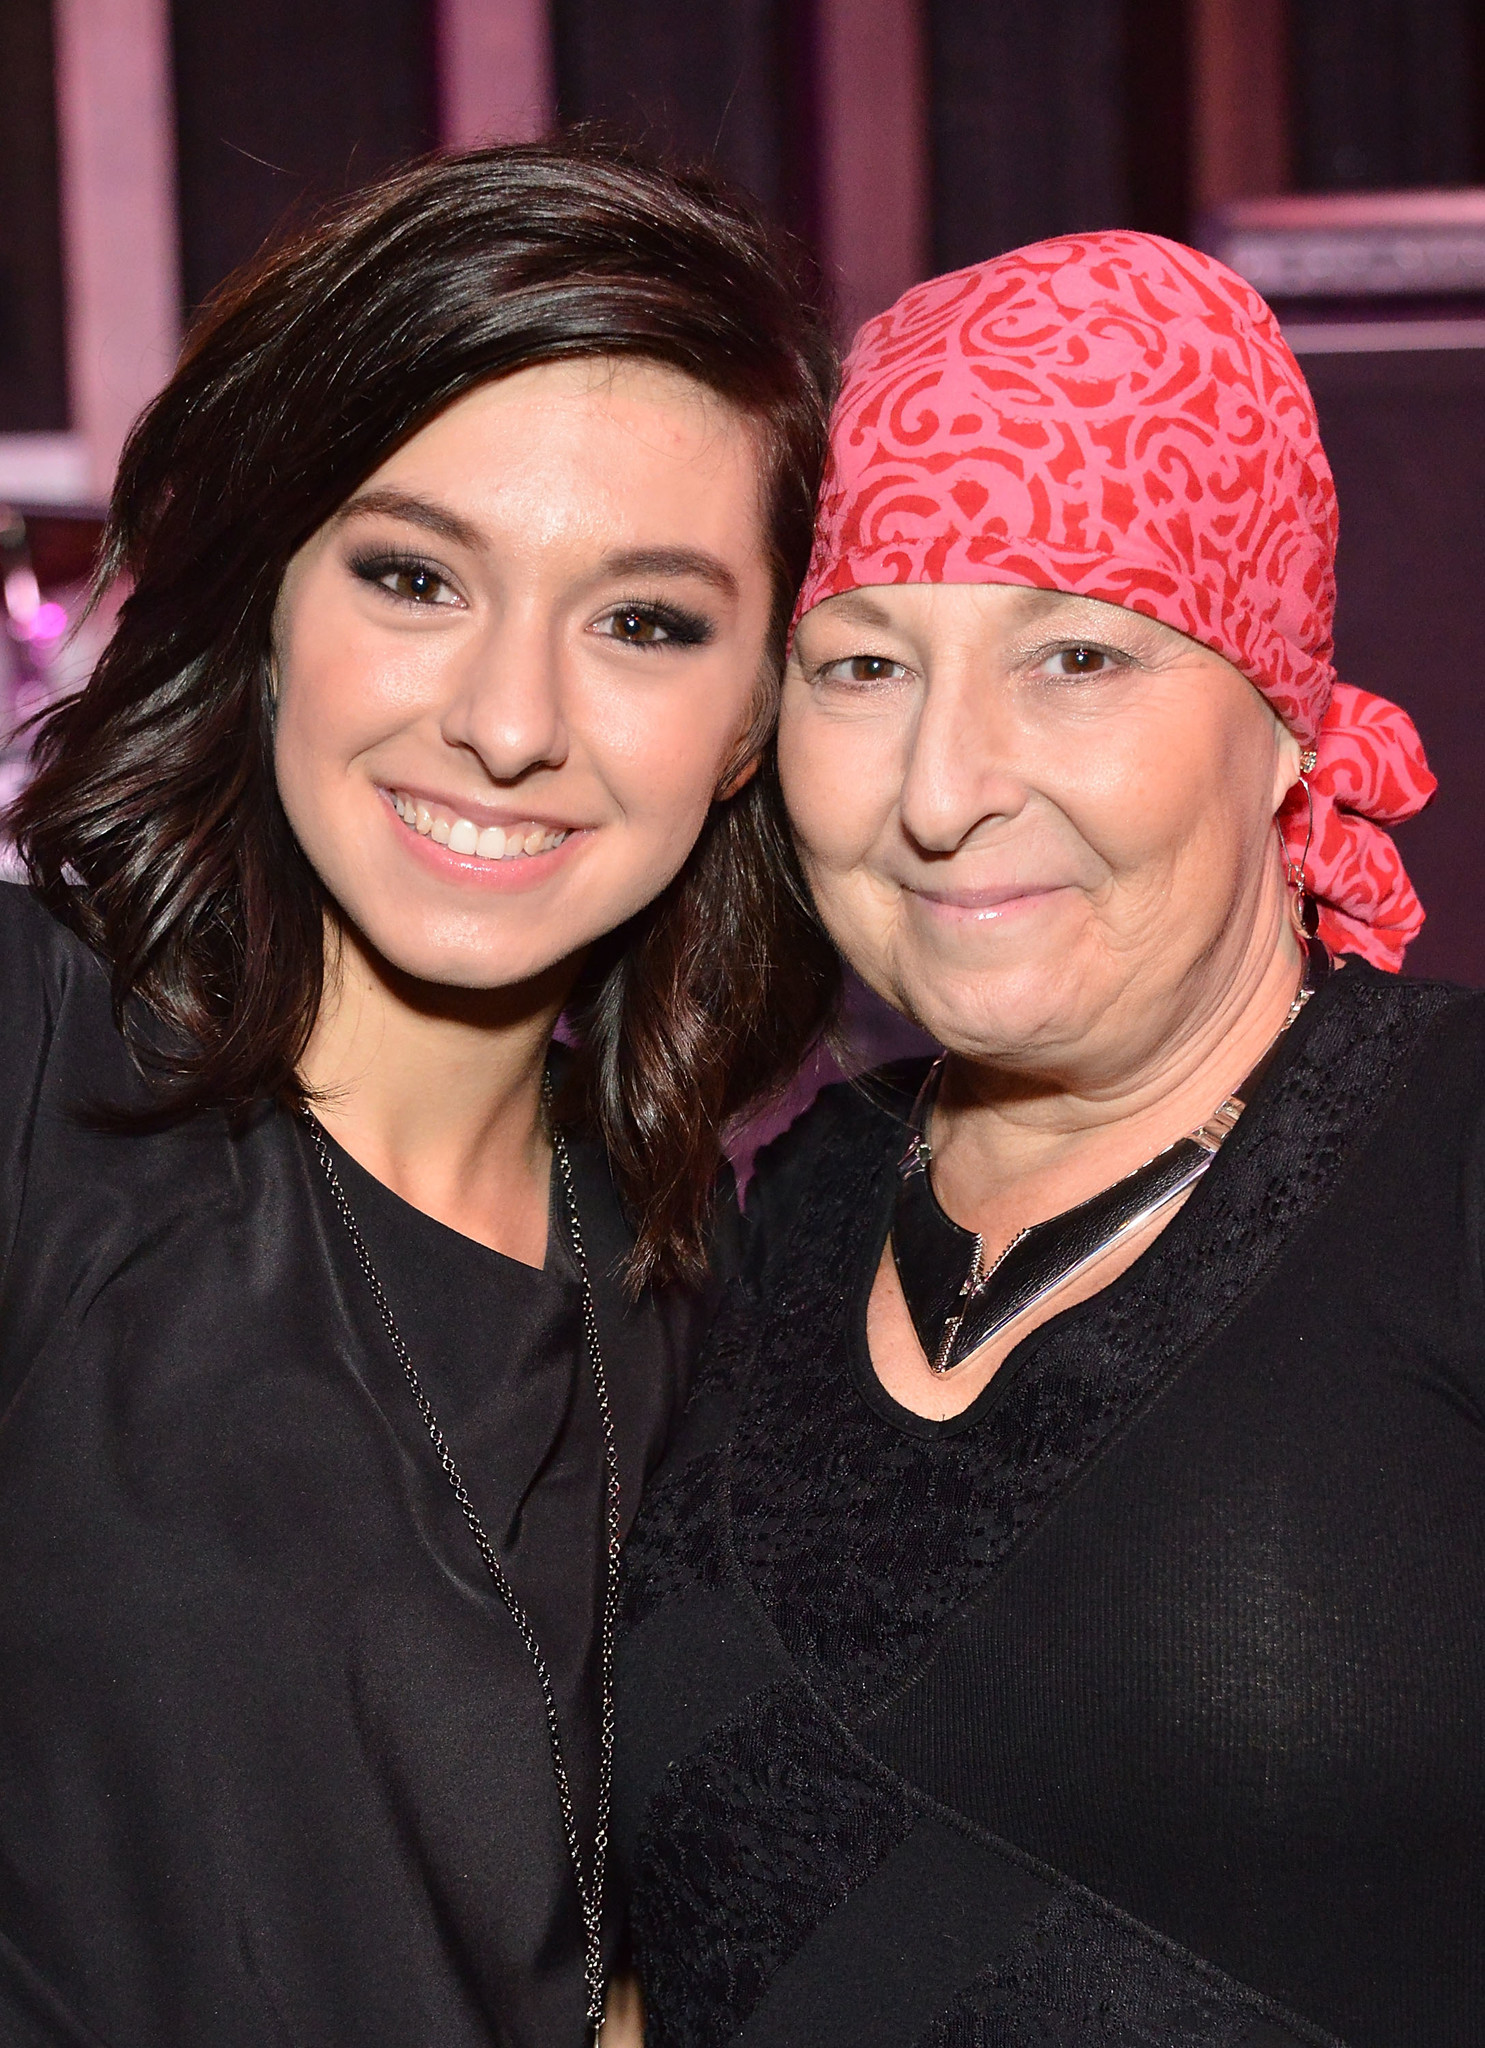 Christina Grimmie and her mother Tina attend the Hard Rock Cafe Hollywood's PINKtober campaign kick off on Oct. 8, 2014 in Hollywood, California.